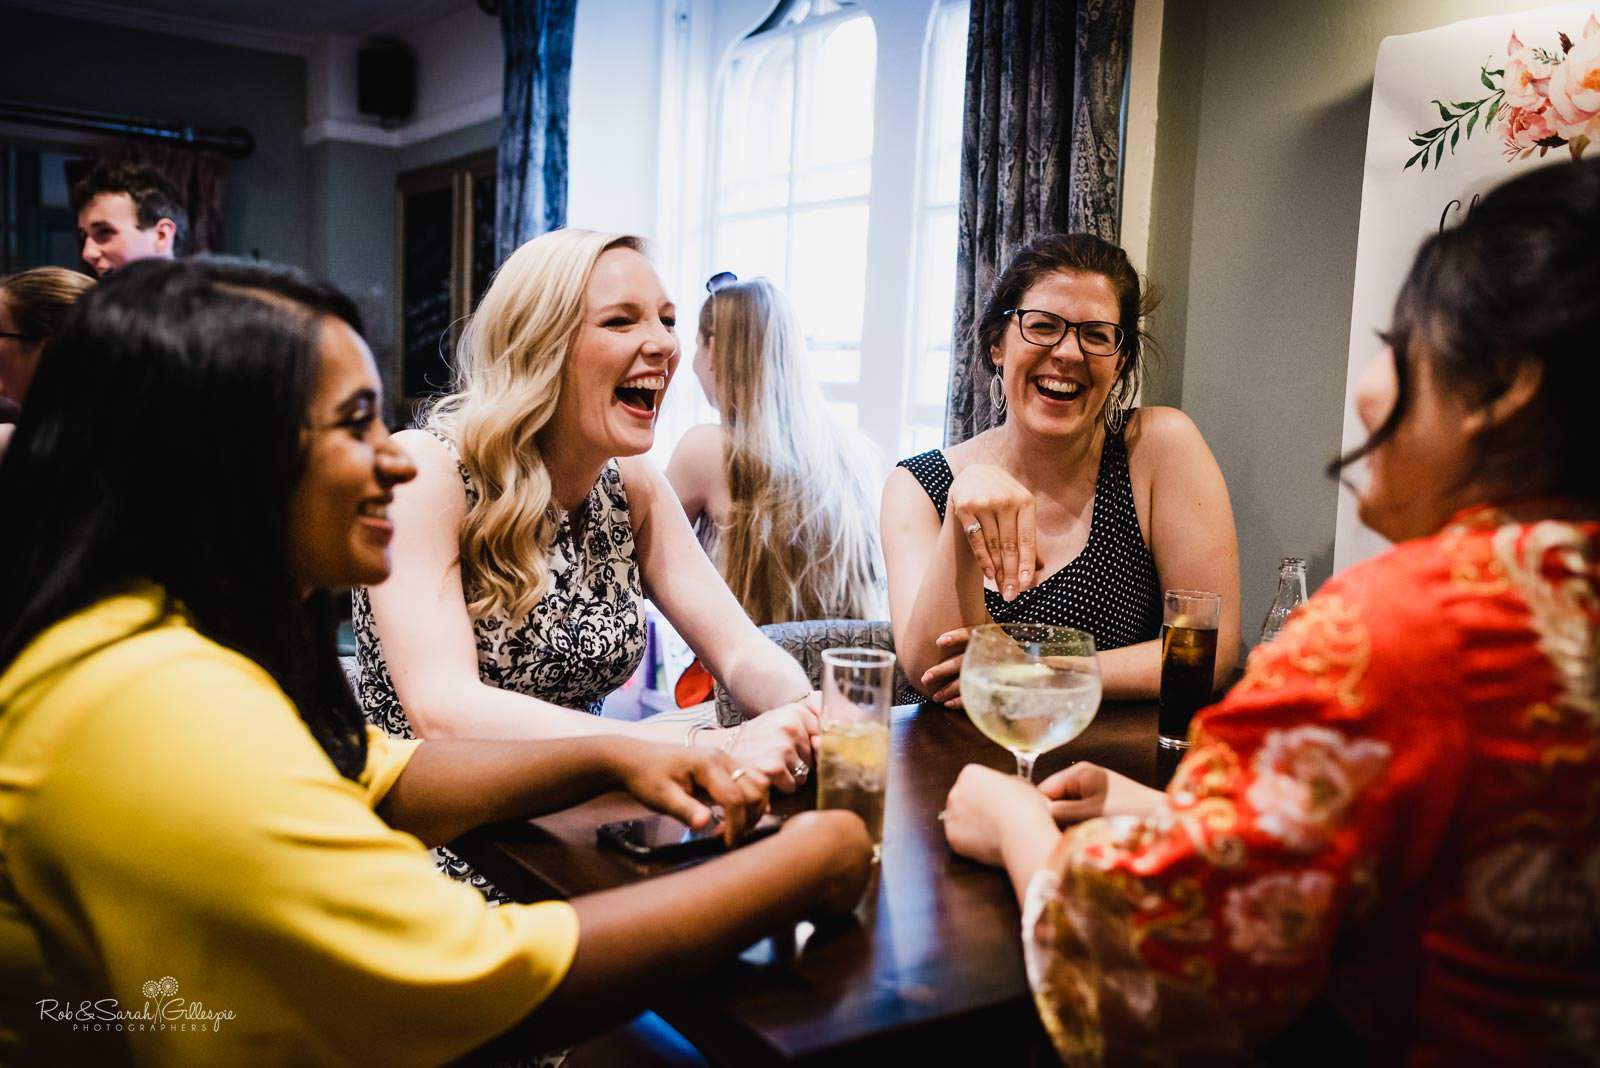 Wedding guests relaxing at The Townhouse in Stratford upon Avon